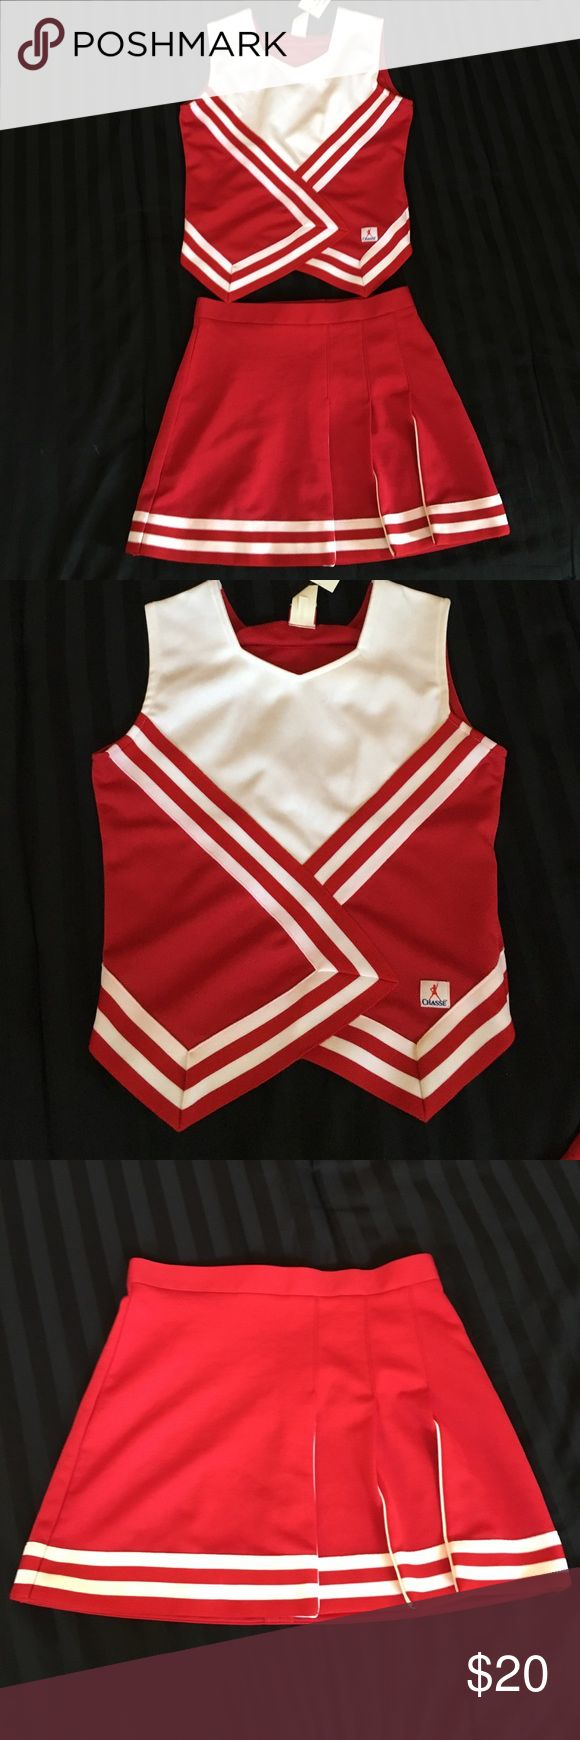 Chasse cheerleader uniform Brand new and never worn. Red and white cheerleader uniform. Adult top: xsmall and adult bottom small: 4. Great for Halloween! Chasse Skirts